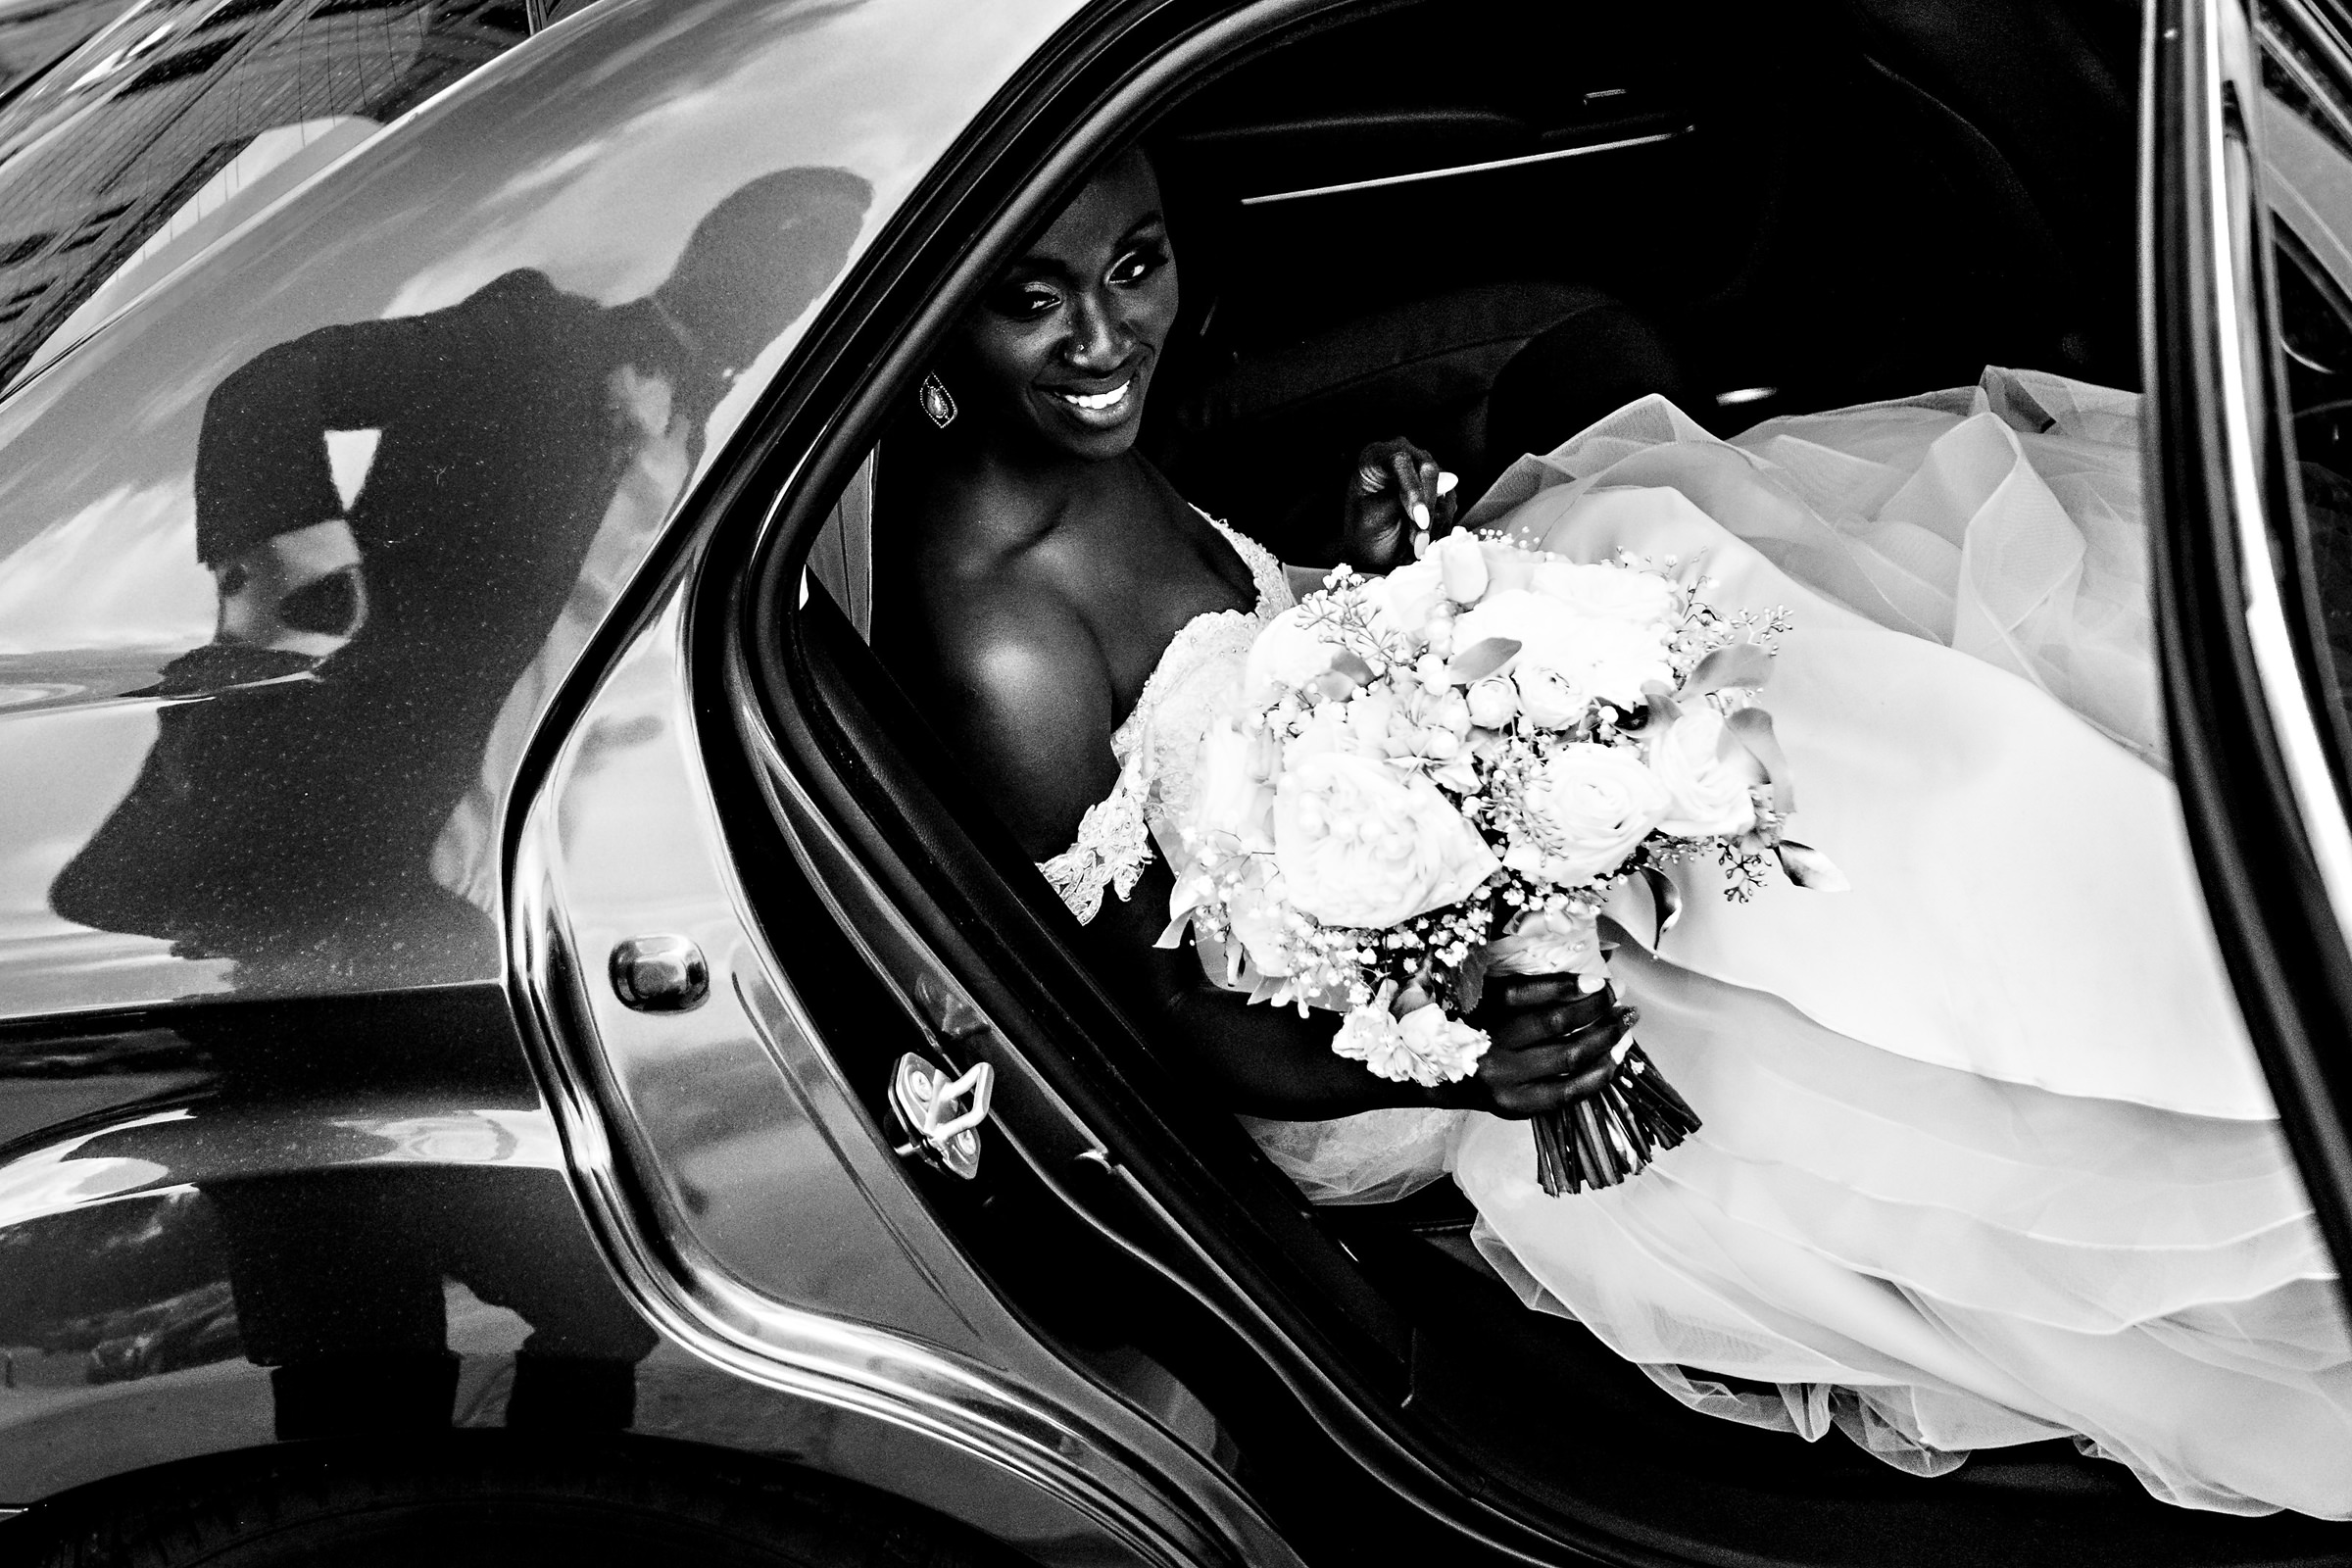 Groom's reflection on limousine as bride arrives - photo by Moore Photography